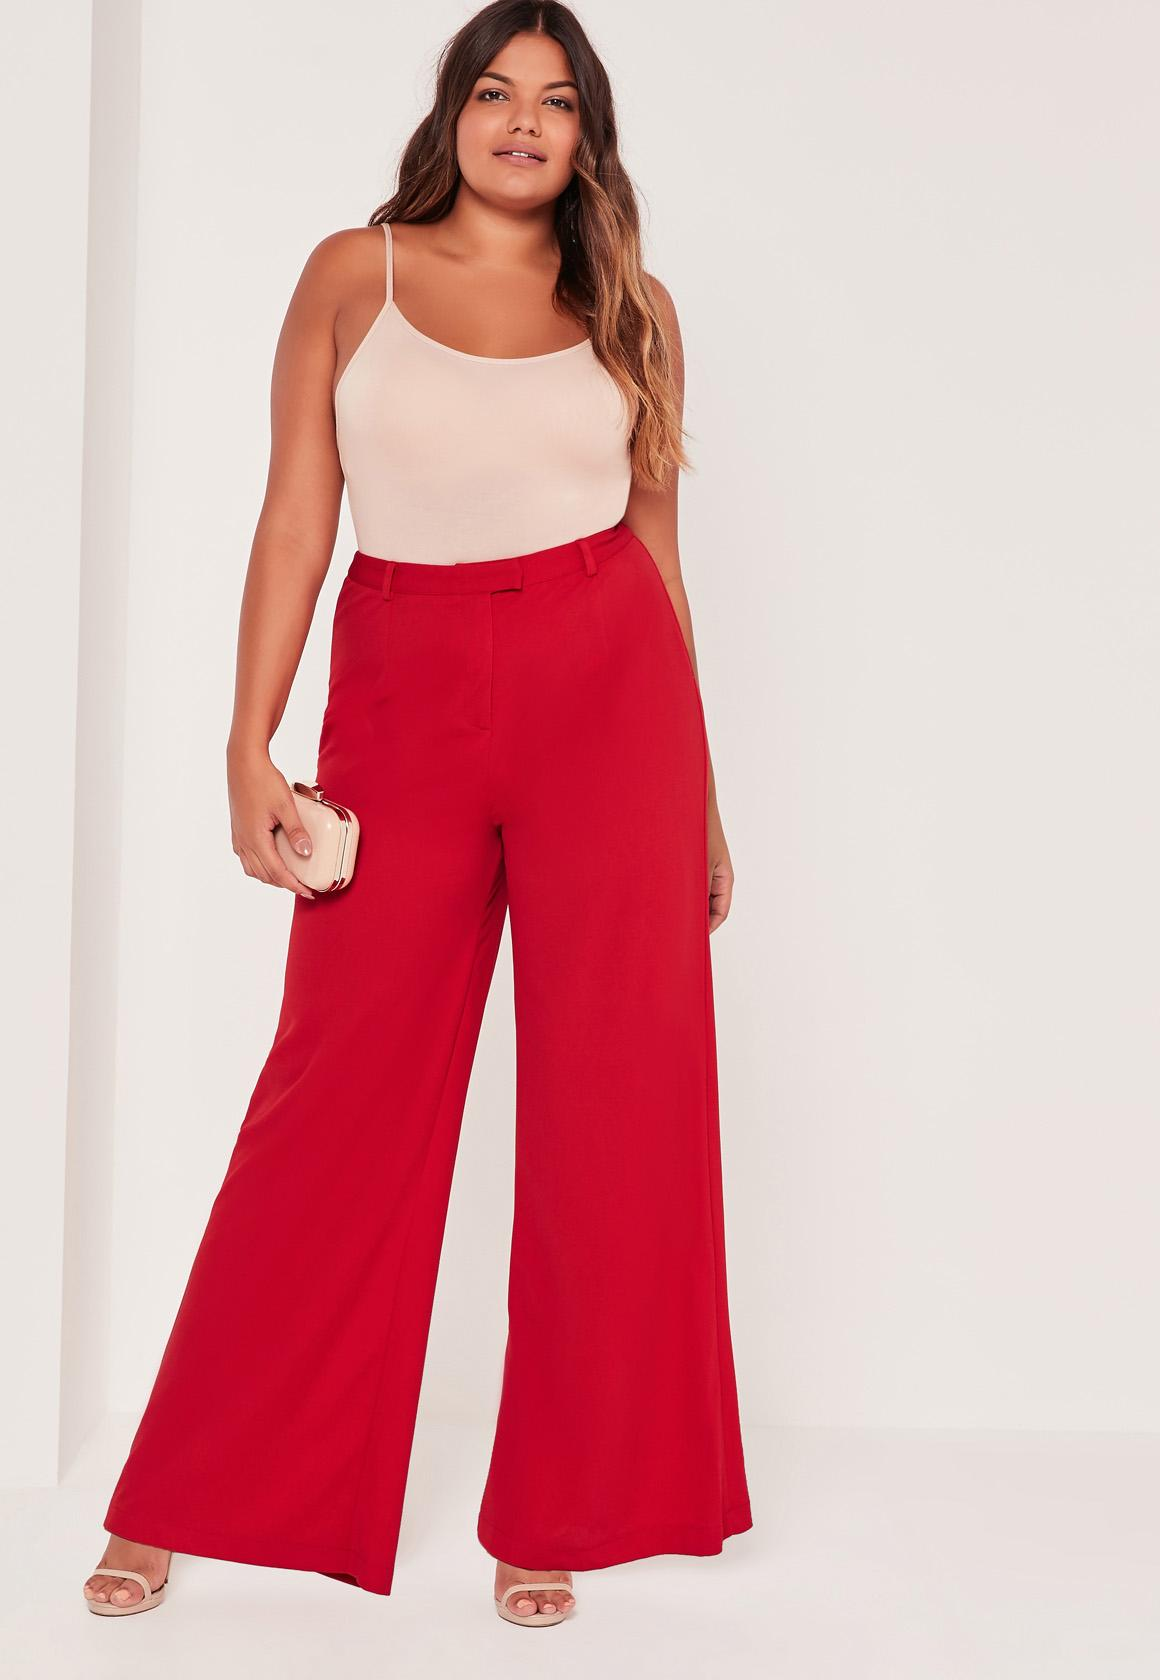 Plus Size Wide Leg Pants Red  Missguided